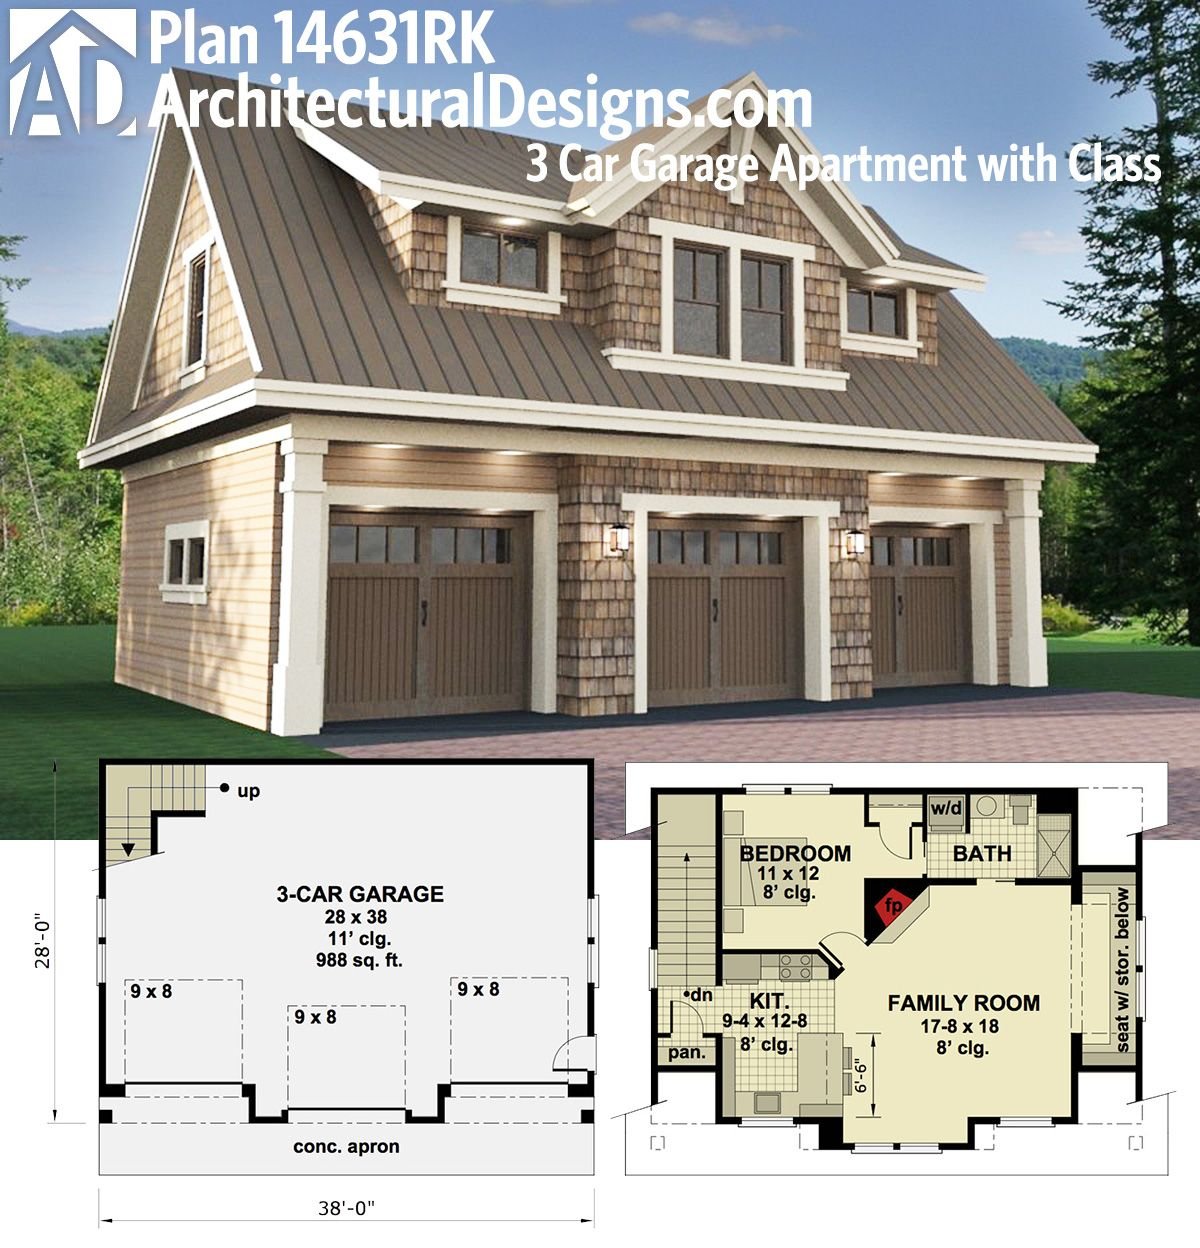 Plan 14631rk 3 car garage apartment with class carriage 3 bedroom carriage house plans